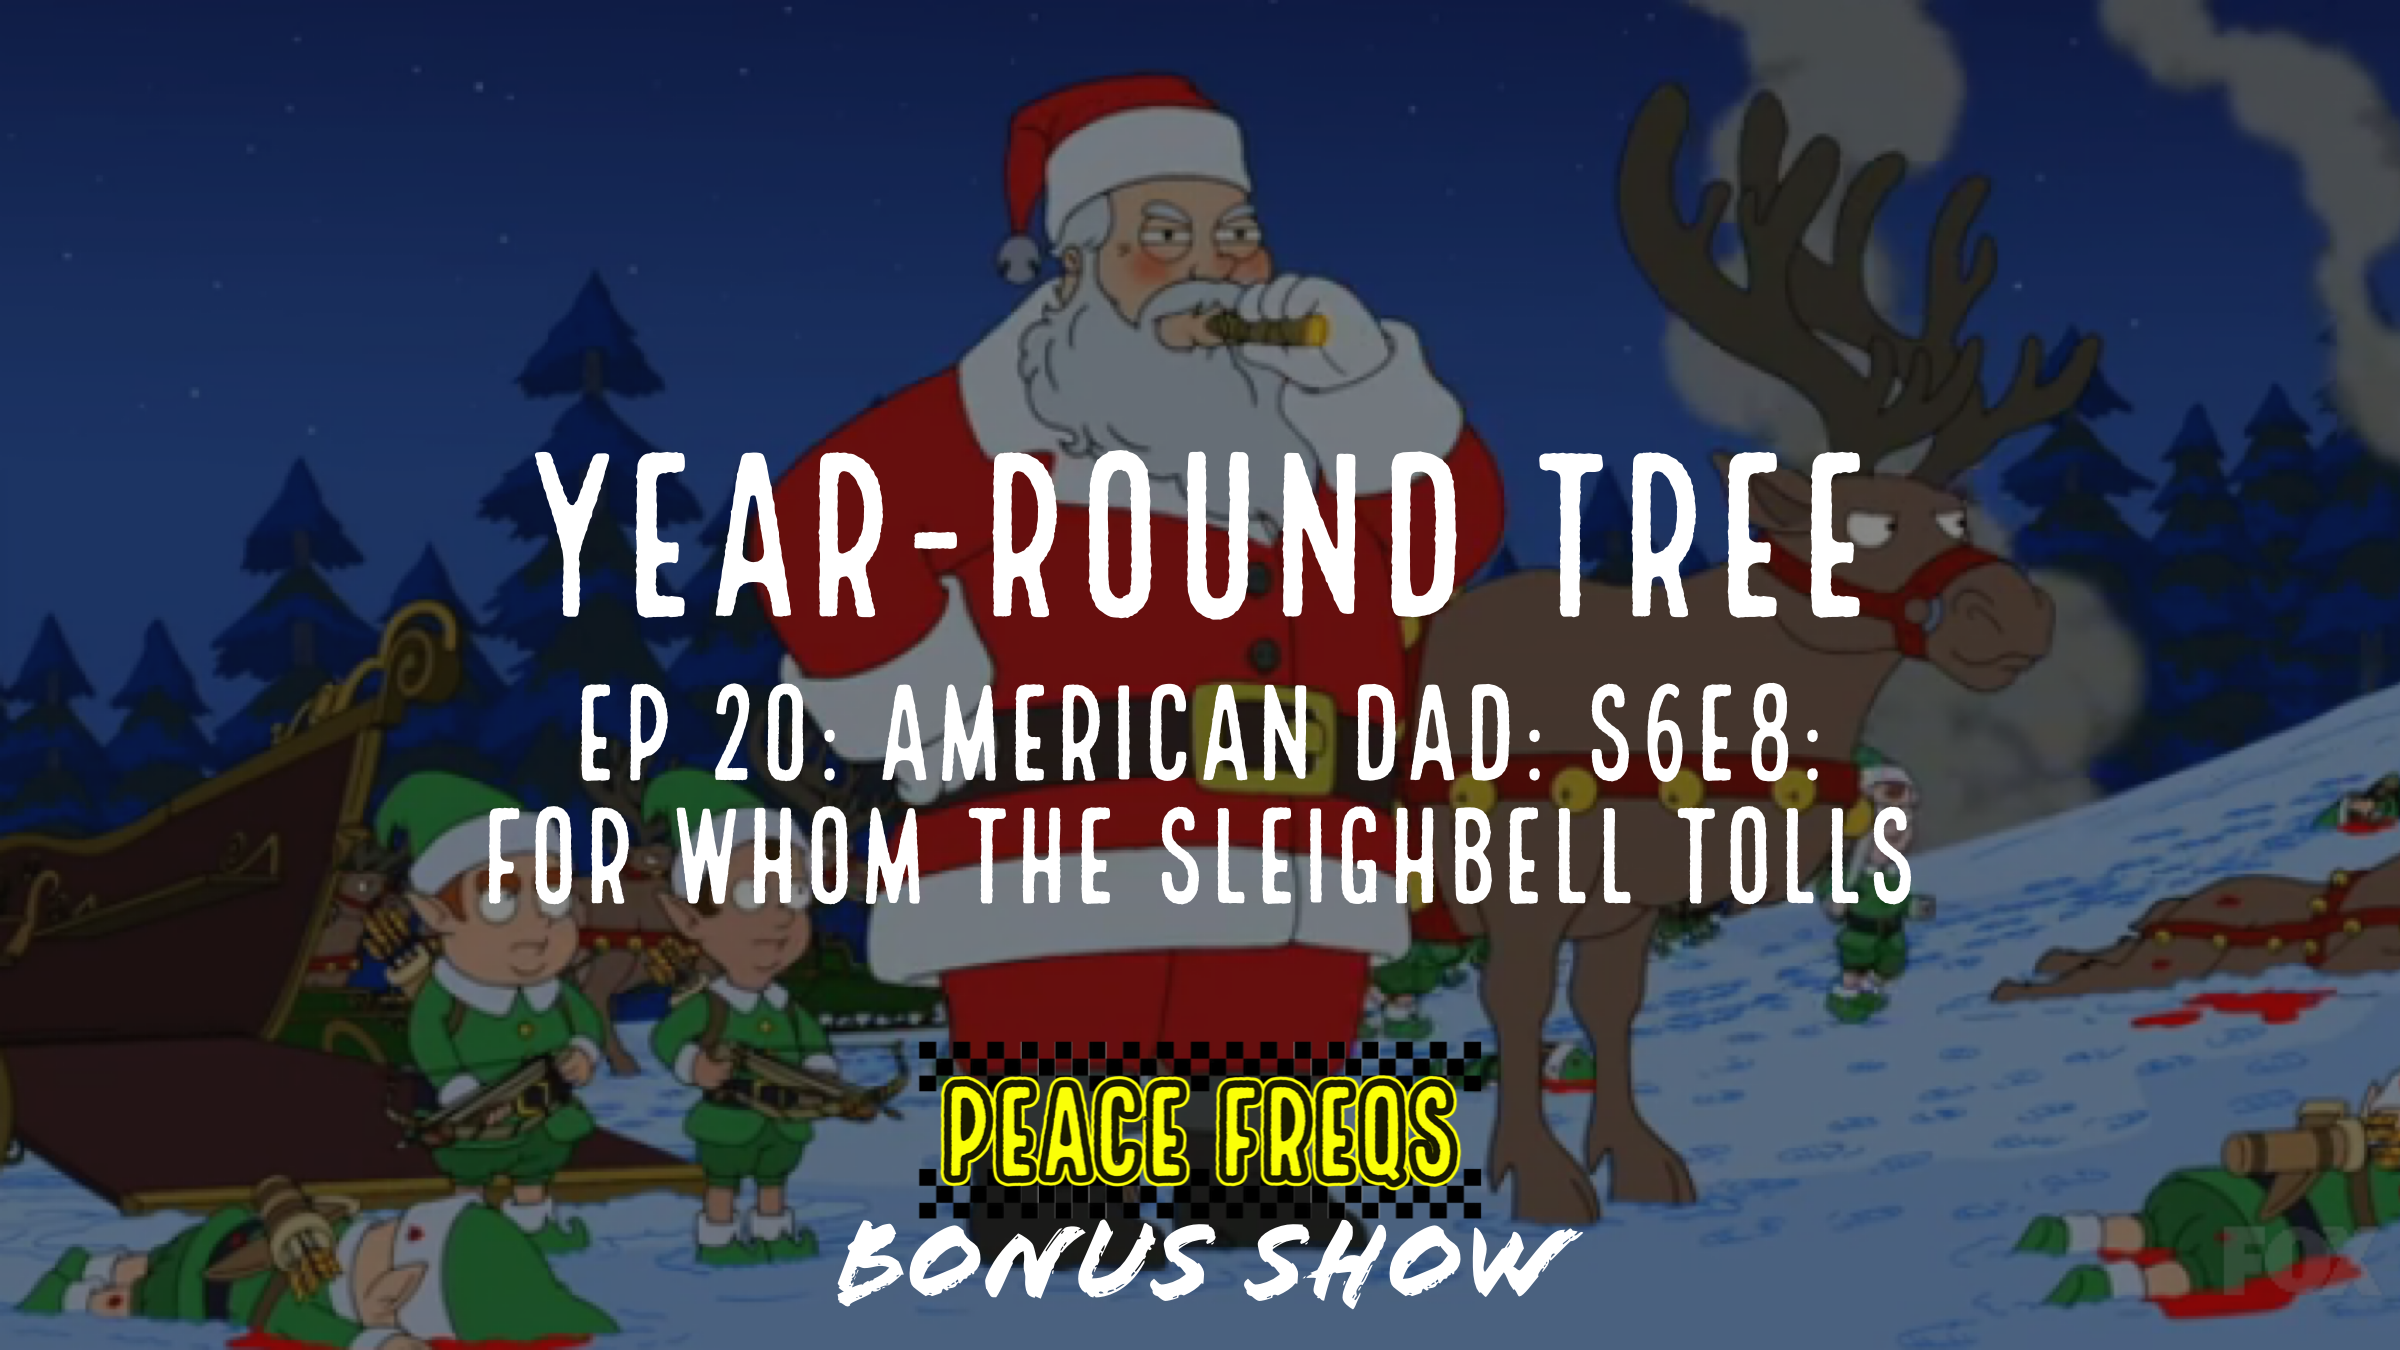 American Dad: S6E8: For Whom The Sleighbell Tolls Review - Year-Round Tree 020 Title Card